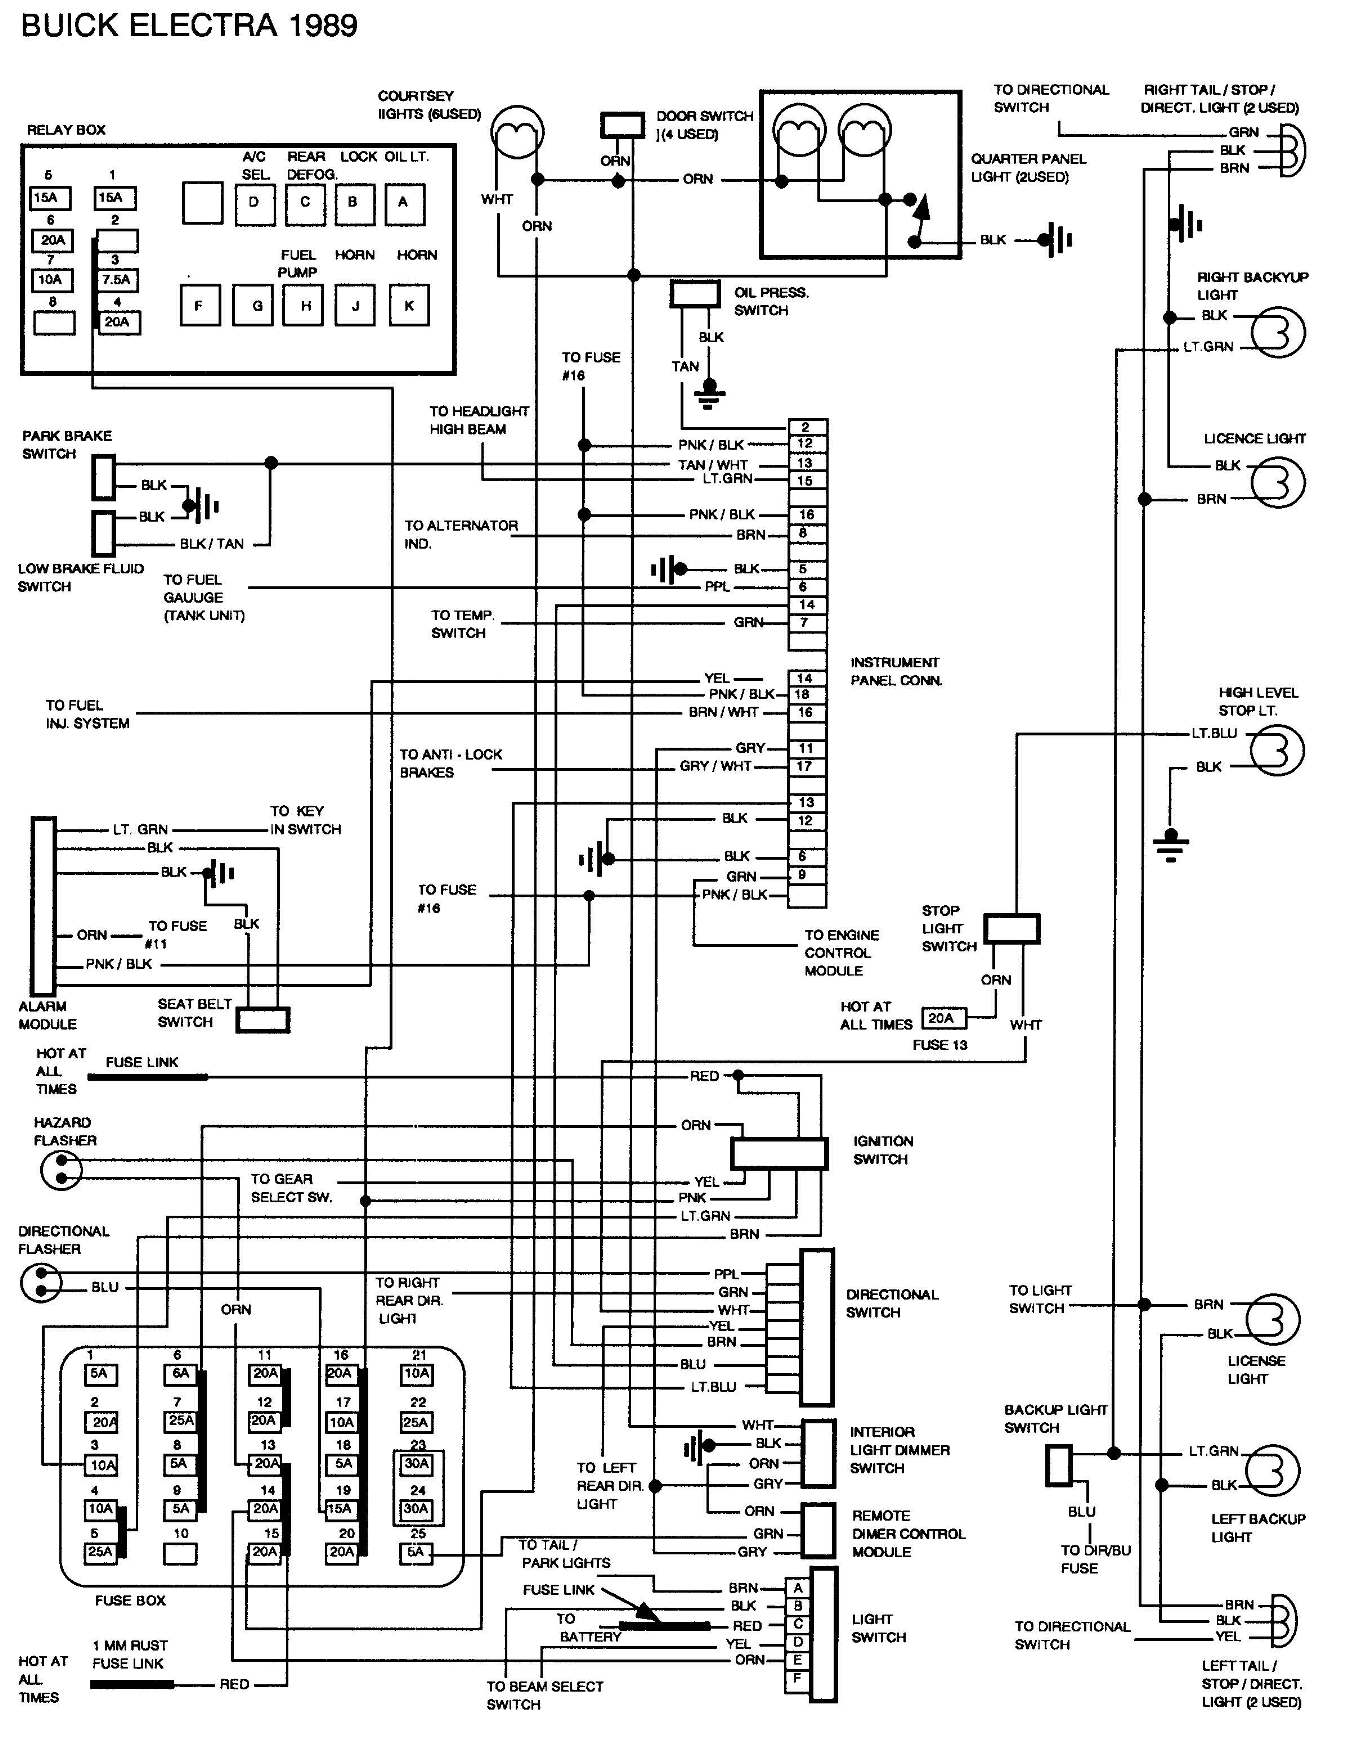 [SCHEMATICS_48EU]  DIAGRAM] 2005 Buick Rendezvous Wiring Assembly Diagram FULL Version HD  Quality Assembly Diagram - VENNDIAGRAMONLINE.NUITDEBOUTAIX.FR | Buick Rendezvous Window Wiring Diagram |  | venndiagramonline.nuitdeboutaix.fr